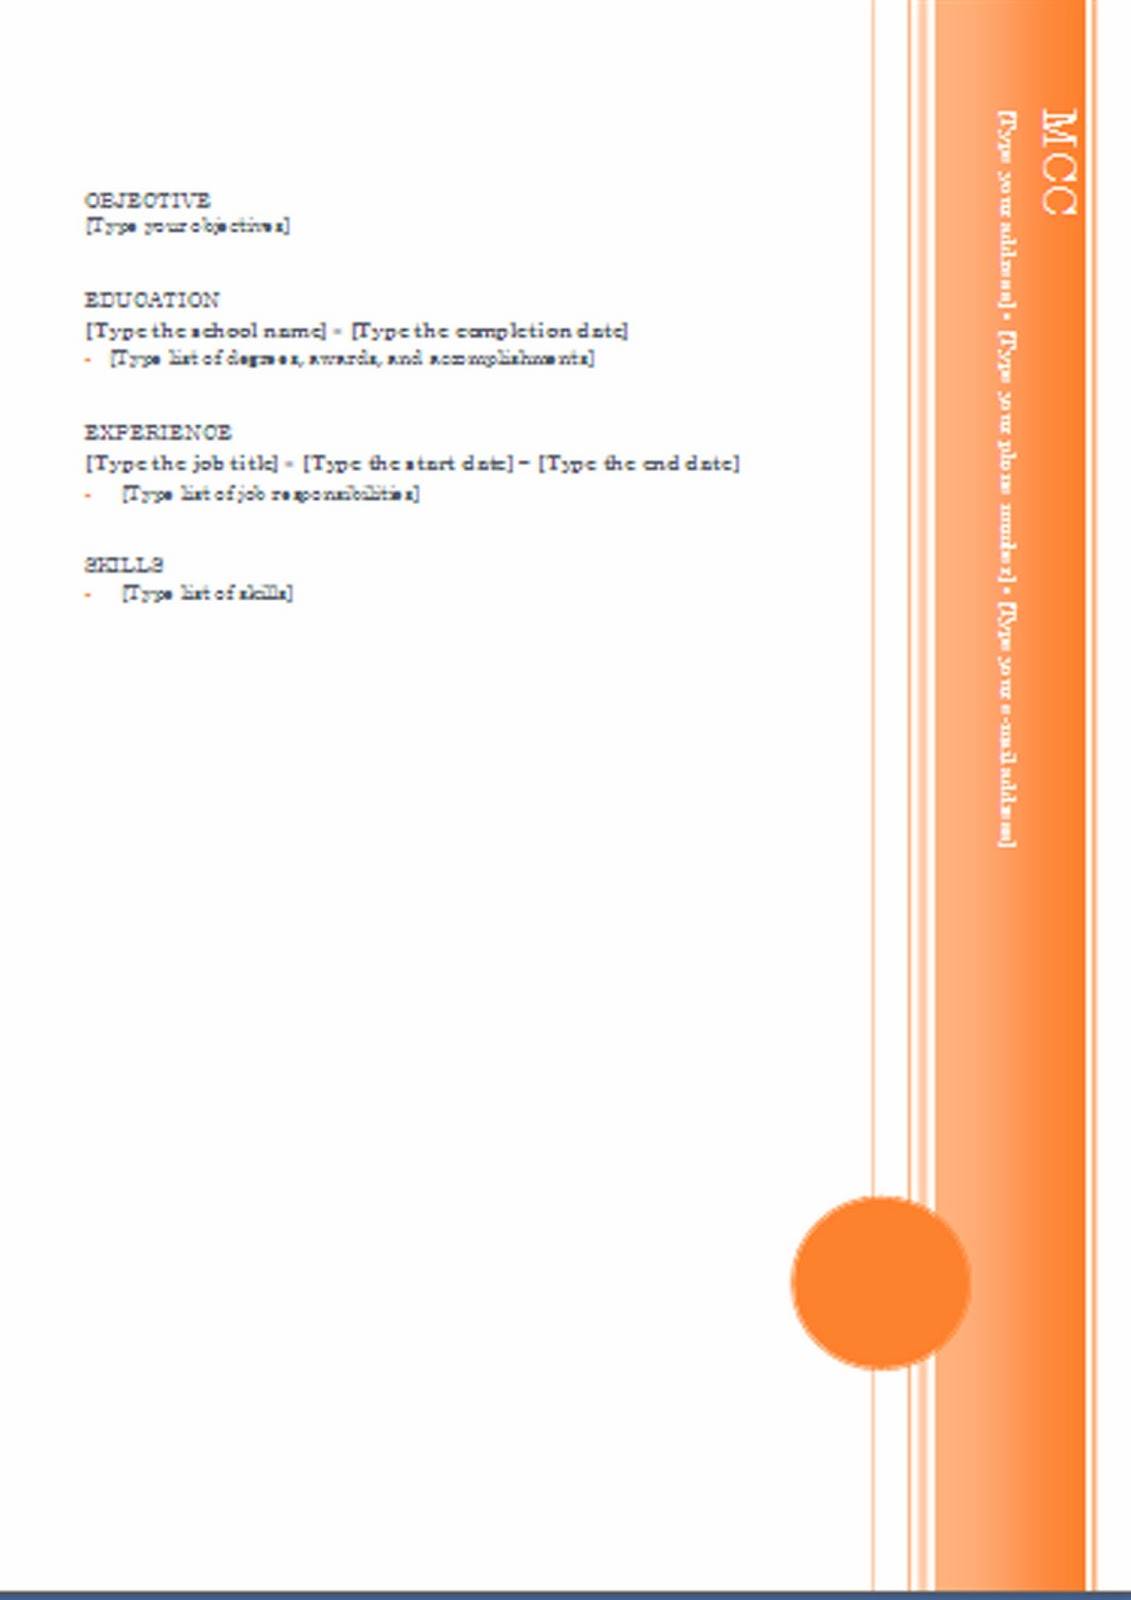 cv formats  u0026 notes  new lates cv formats 2014  cv formats  latest cv formats  orange cv formats